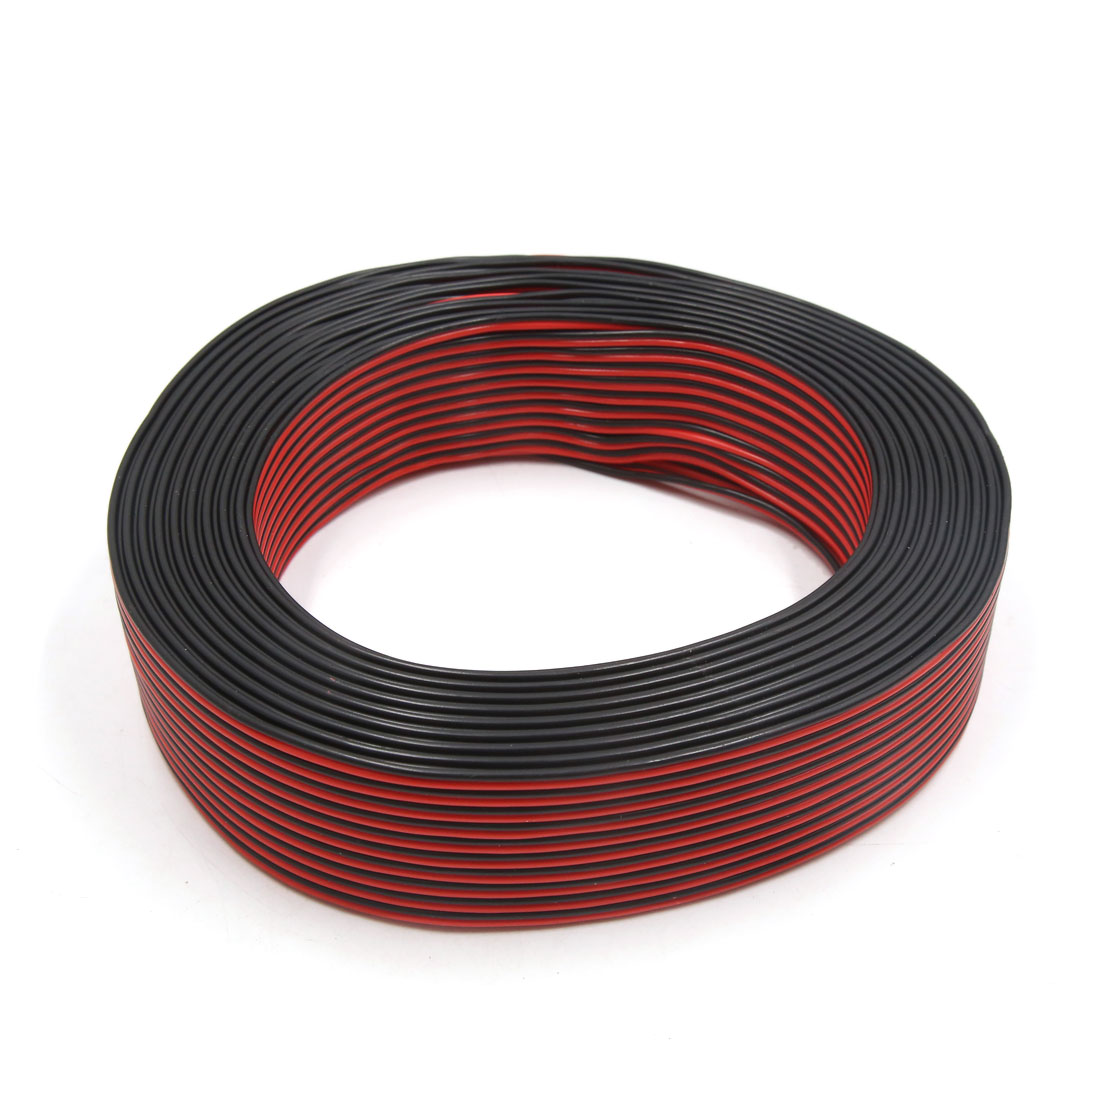 0.3mm2 x 100M Black Red Horn Speaker Wire Cable for Auto Car Home Audio